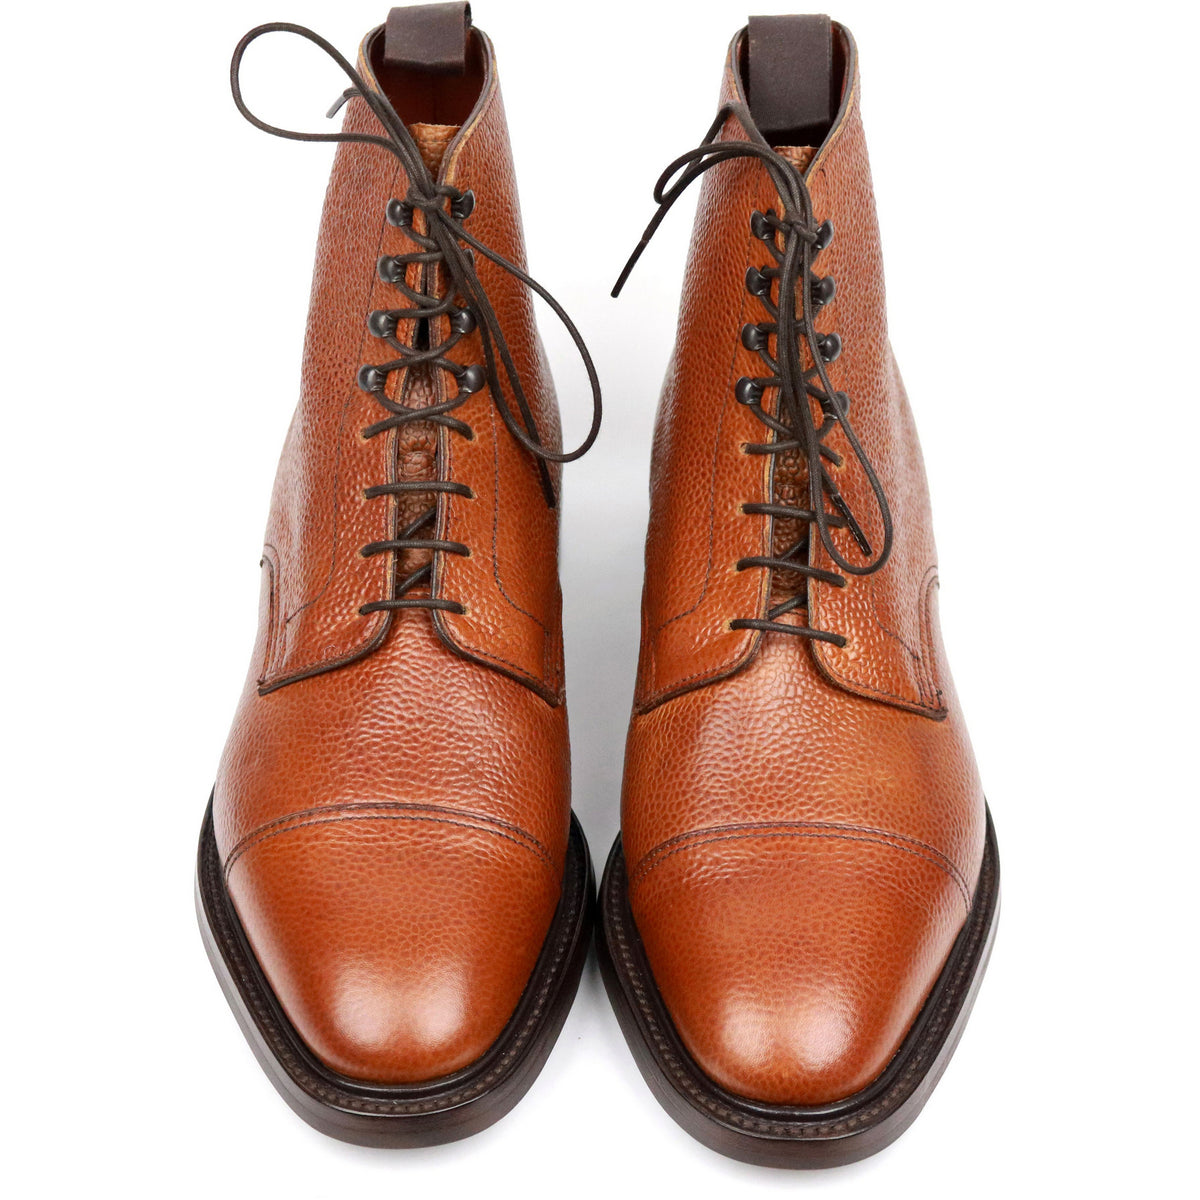 George Cleverley X Kingsman Tan Brown Leather Cap Toe Boots UK 8.5 E